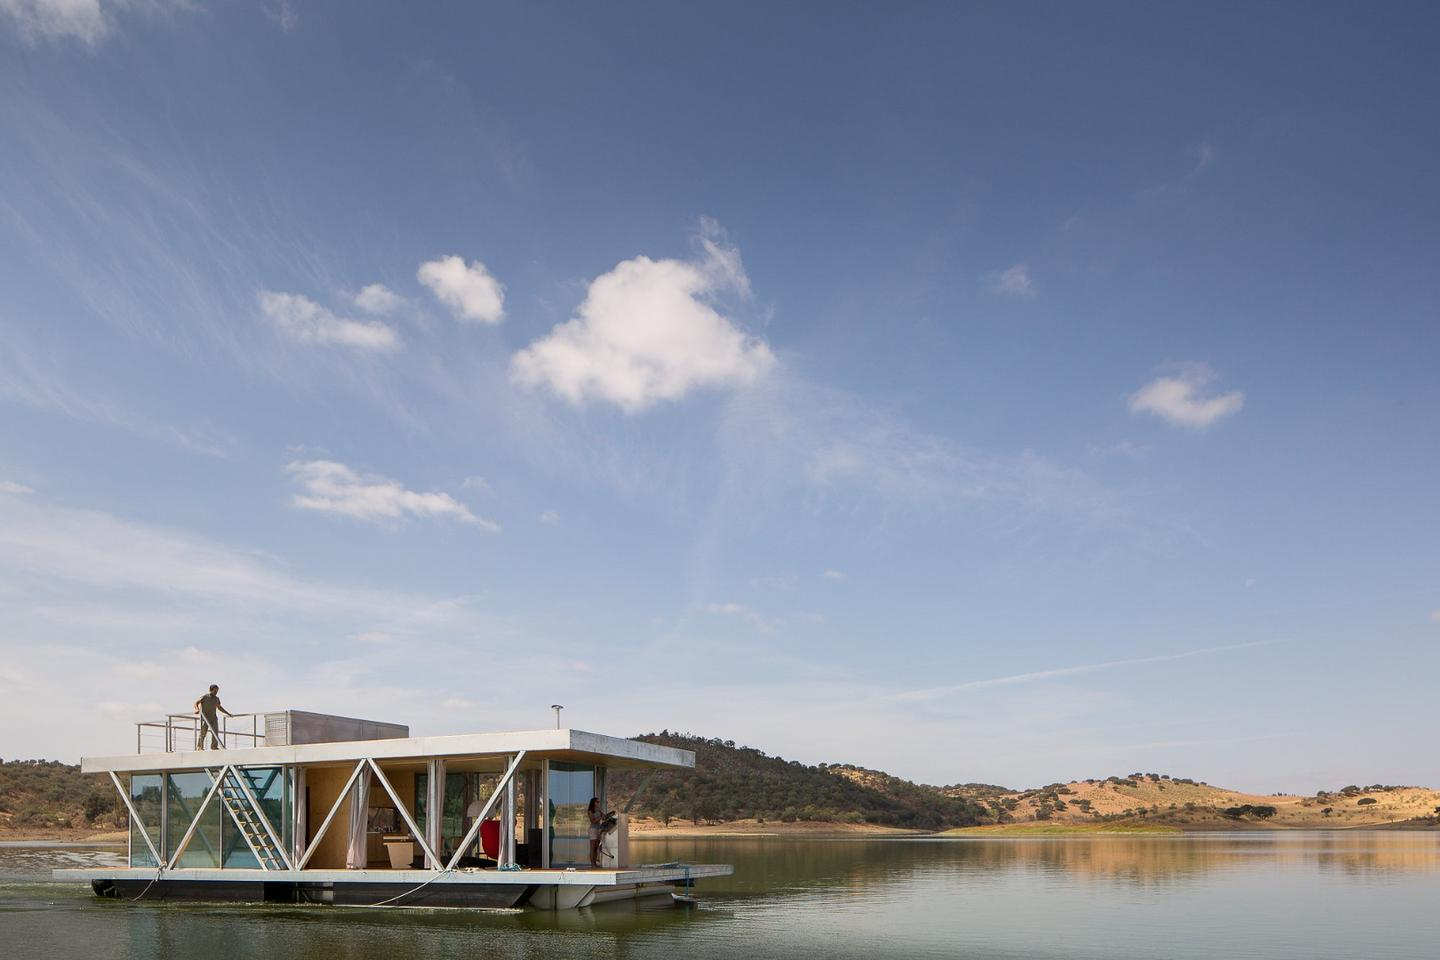 The Floatwing is a motorized floating home